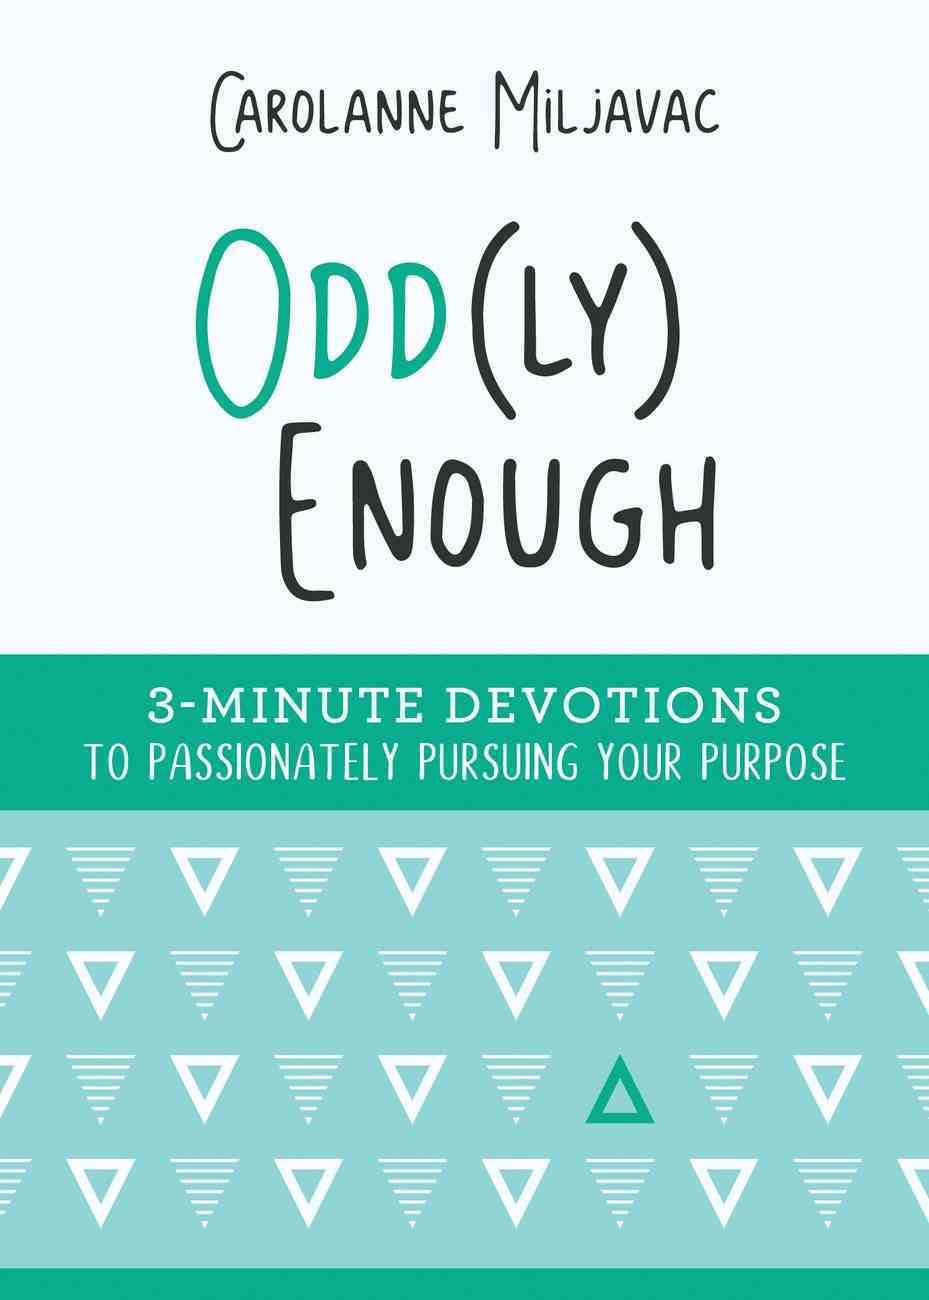 Odd Enough: 3-Minute Devotions to Passionately Pursuing Your Purpose (Ly) eBook